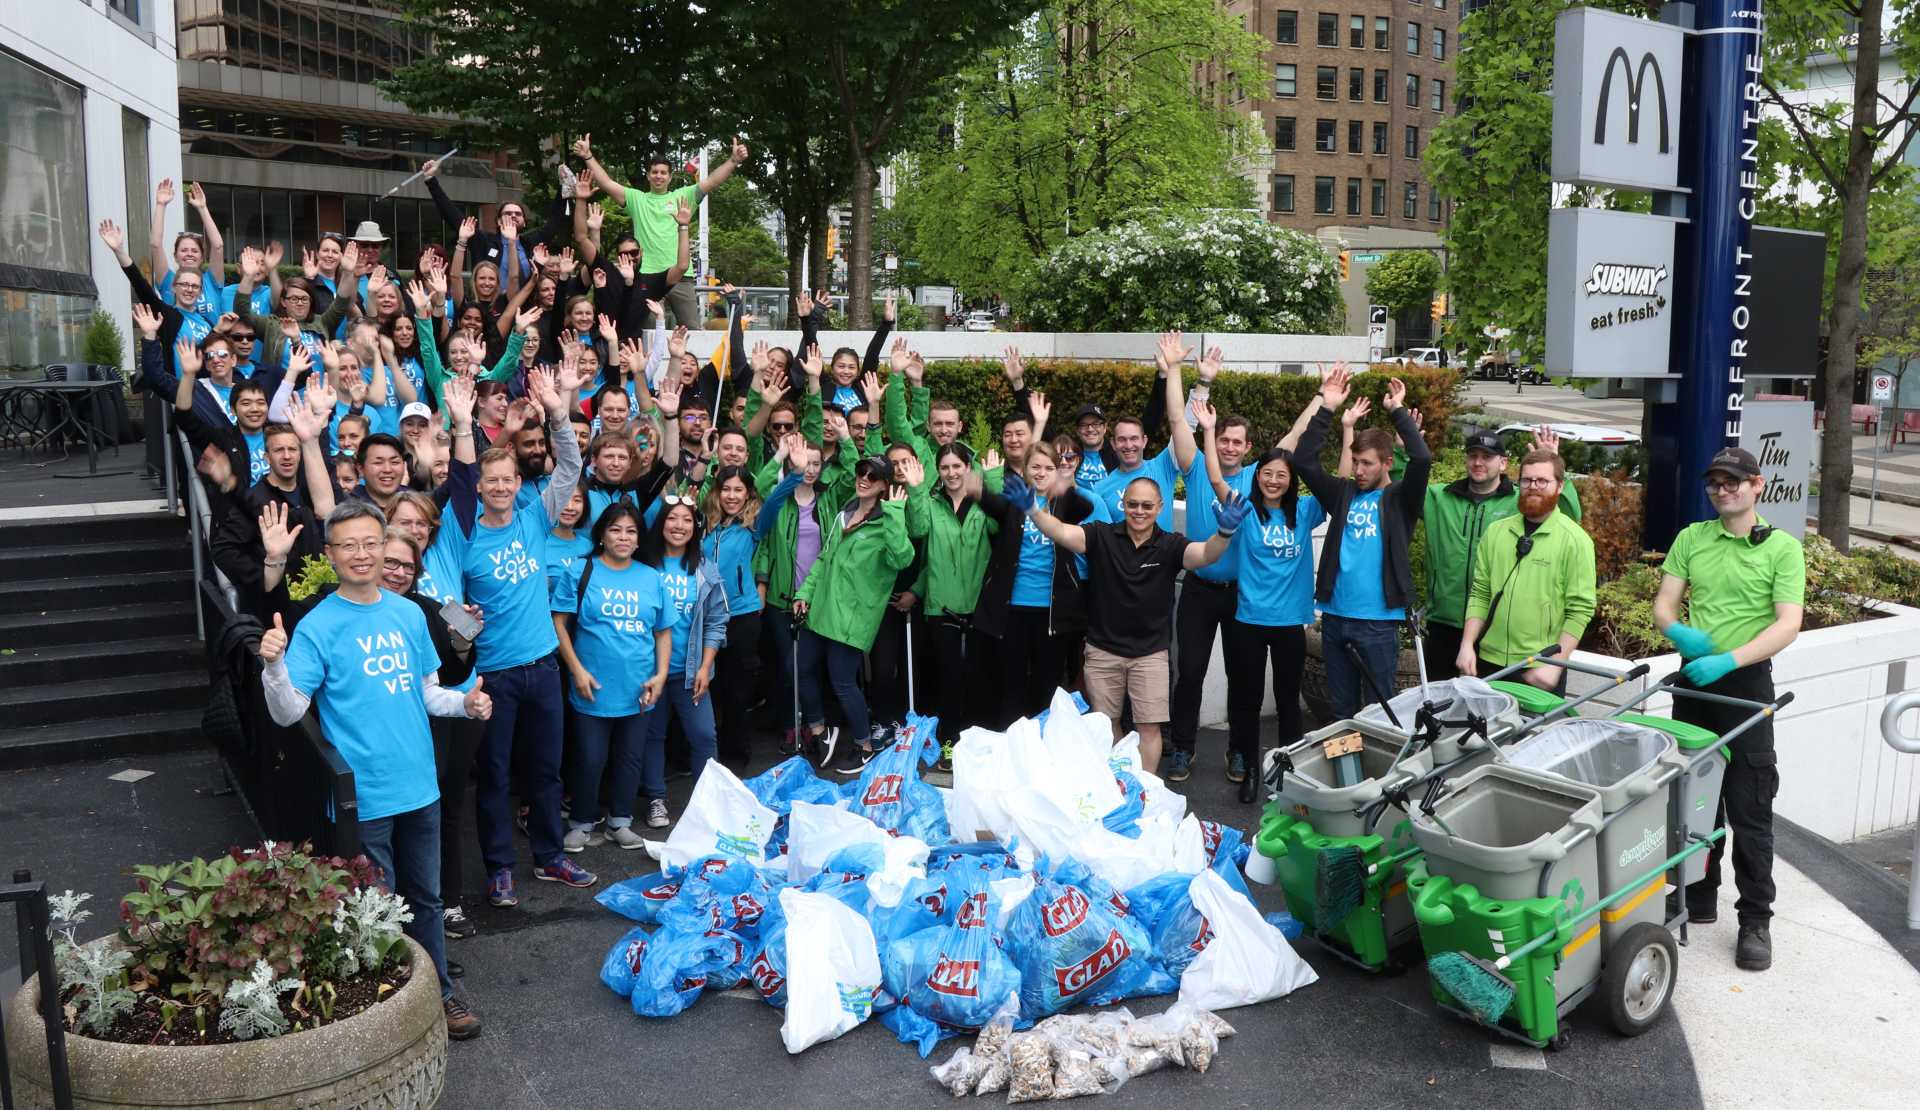 Tourism Vancouver member businesses at the 24th Neighbourhood Clean Up Party